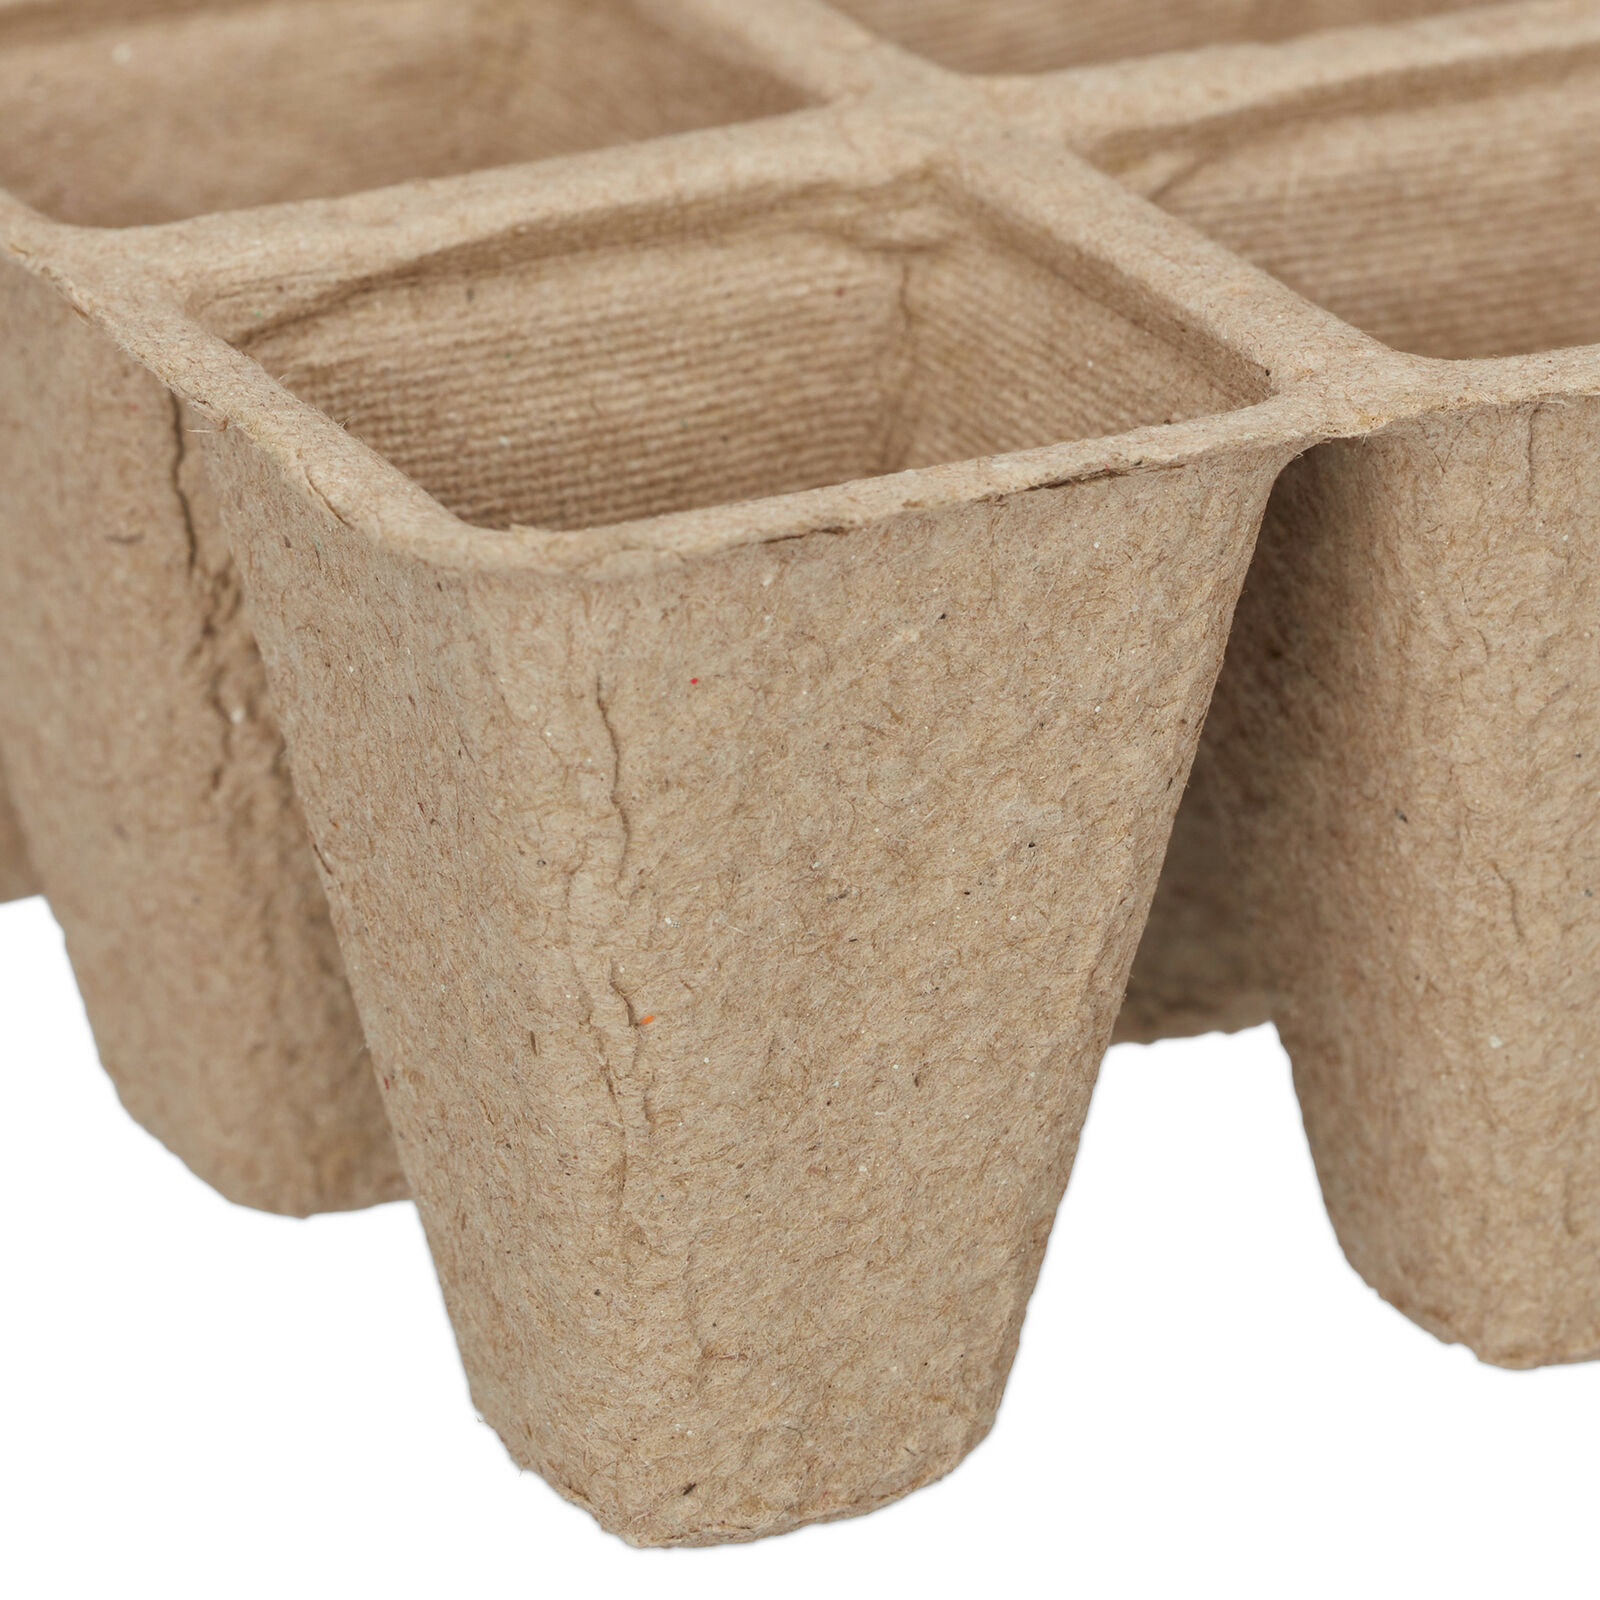 Fibre Plant Pots Tray for Seeds, Seedlings & Cuttings Biodegradable Square 5 cm